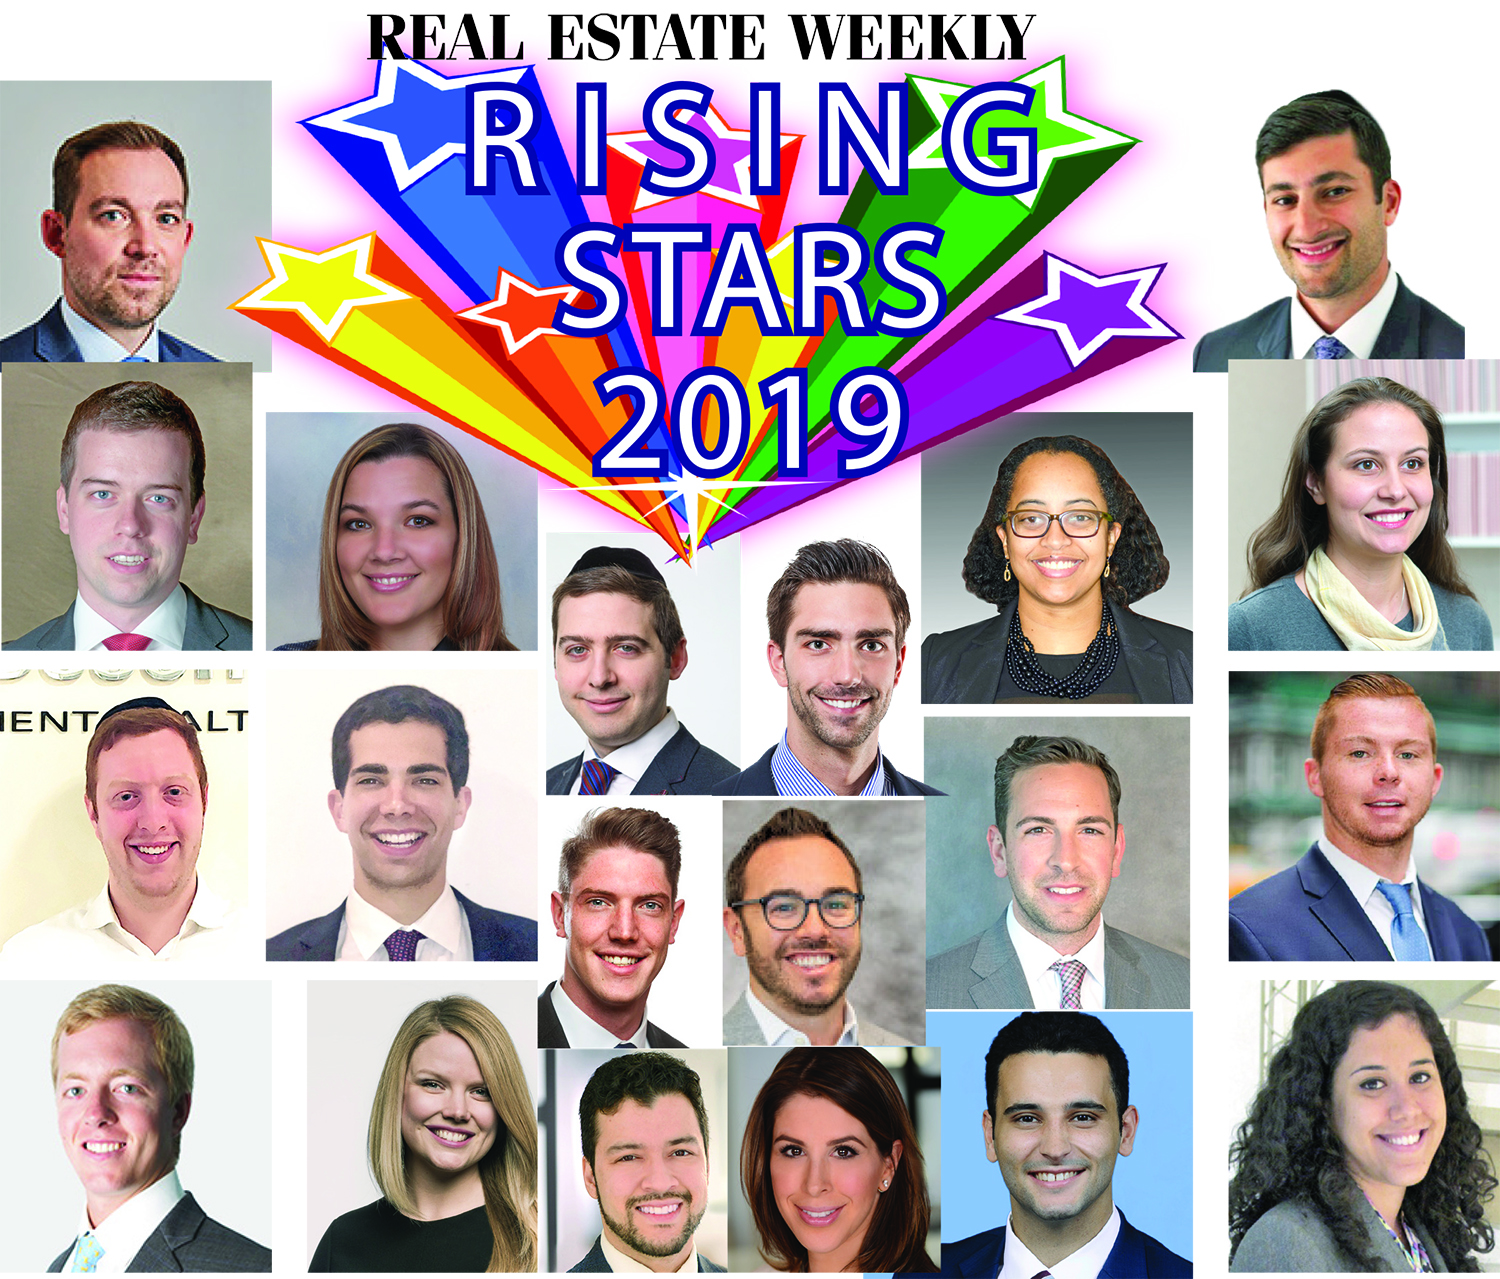 Meet REW's 2019 Rising Stars | Real Estate Weekly